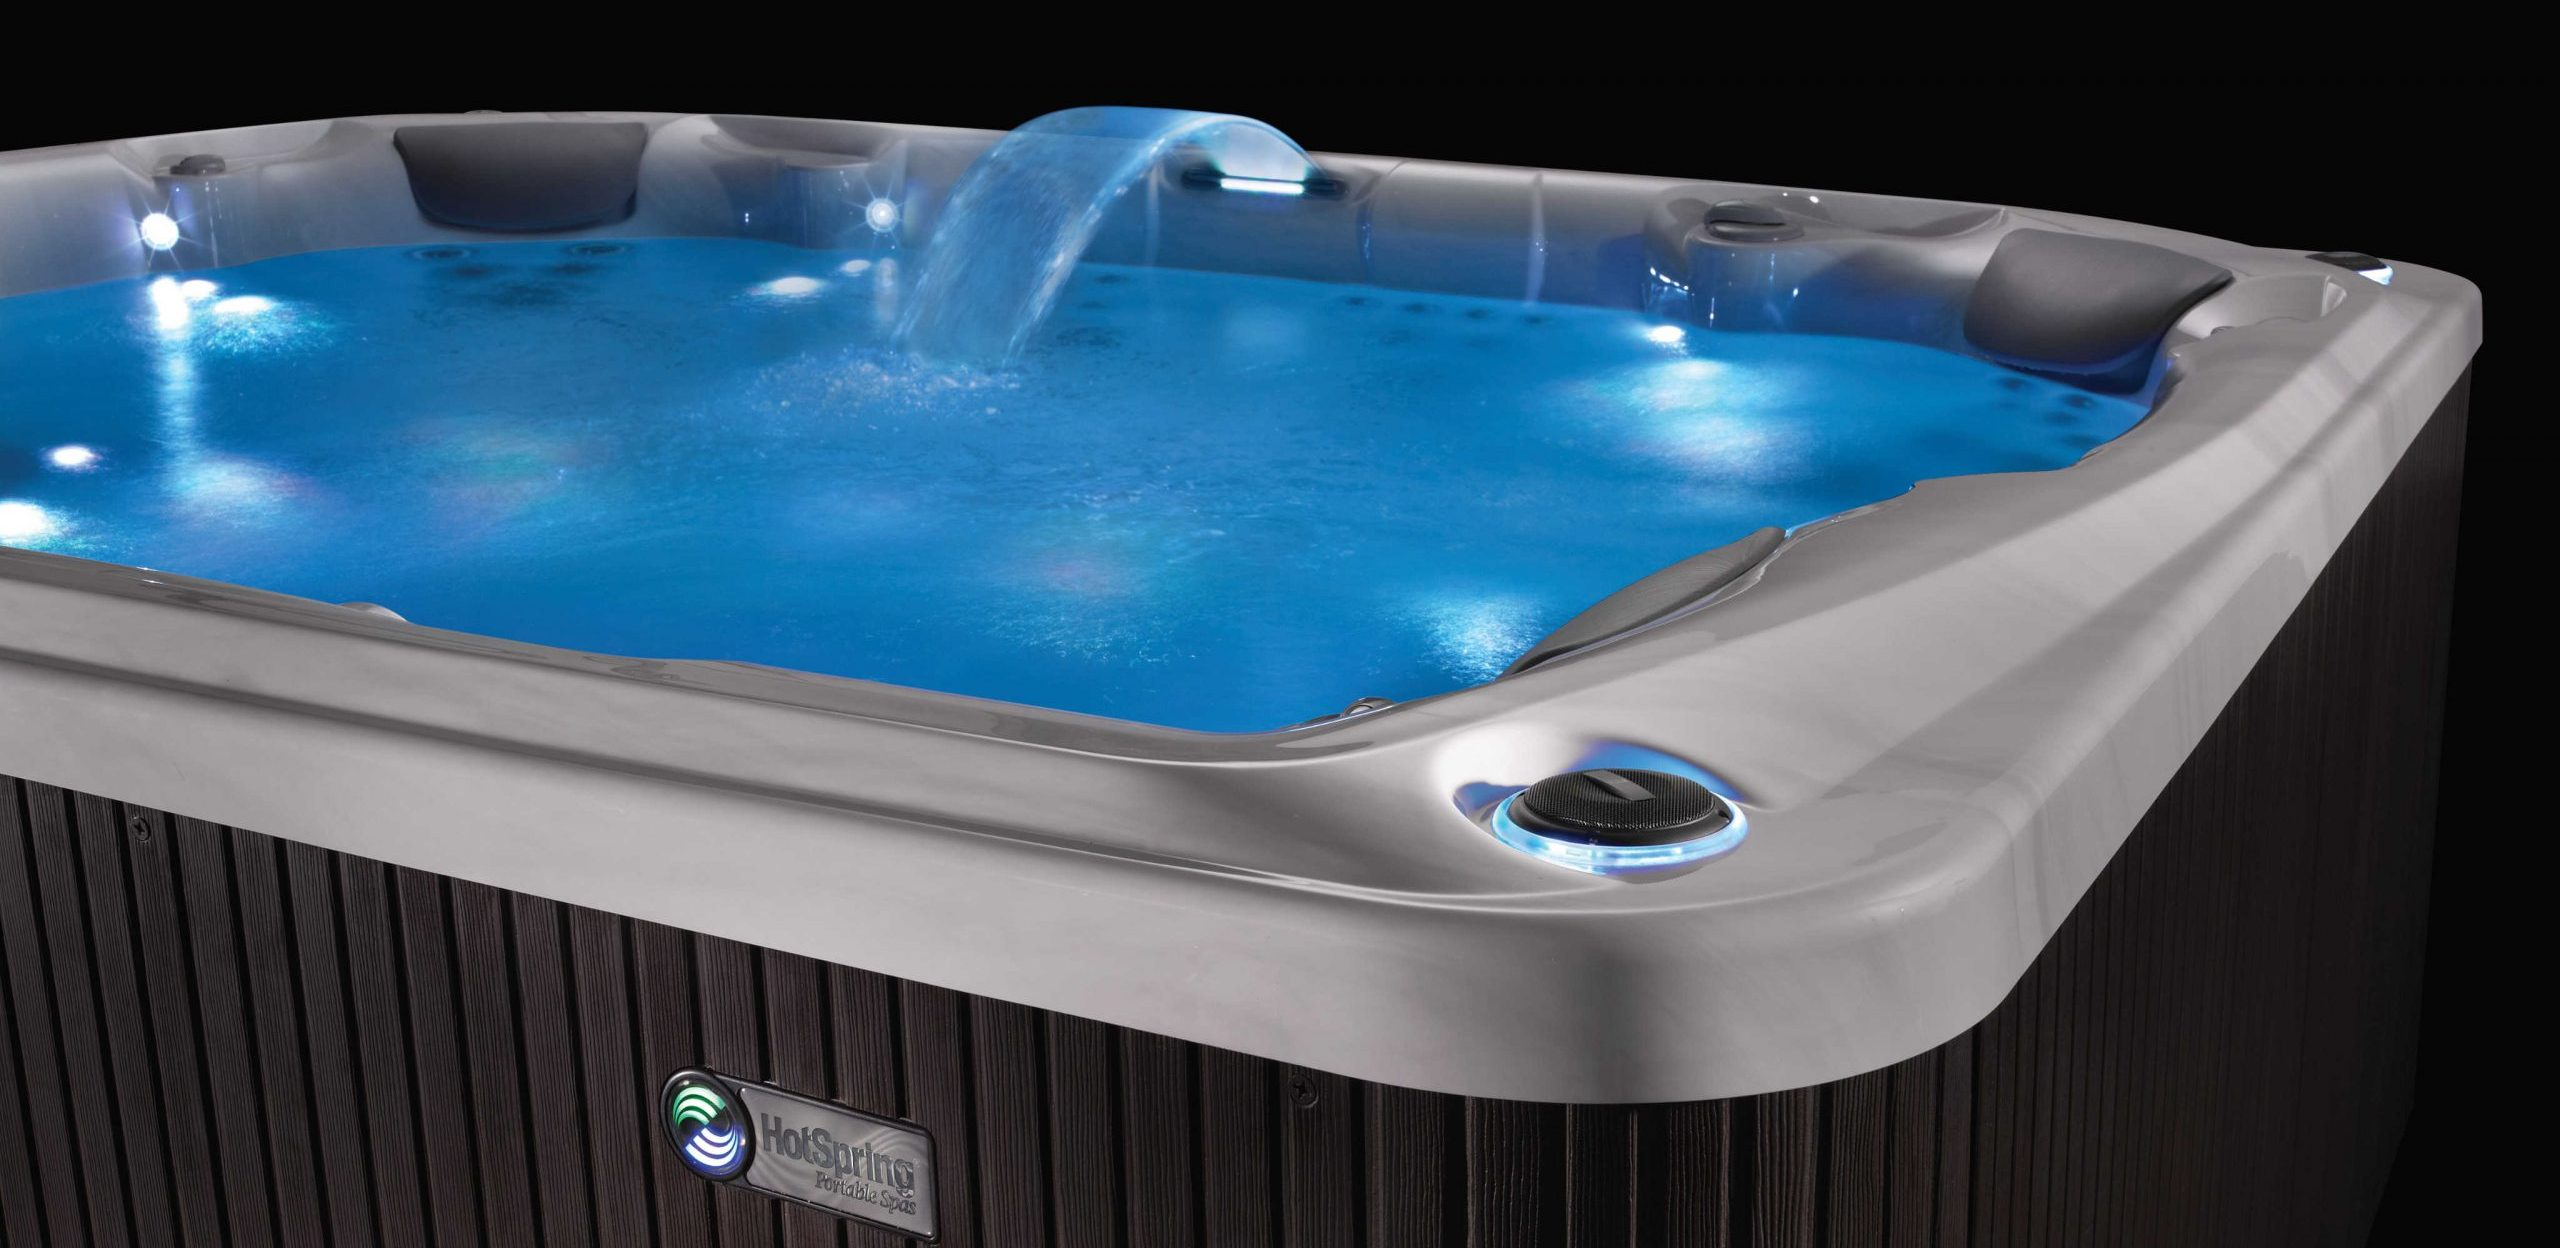 What should I know about installing an indoor hot tub?